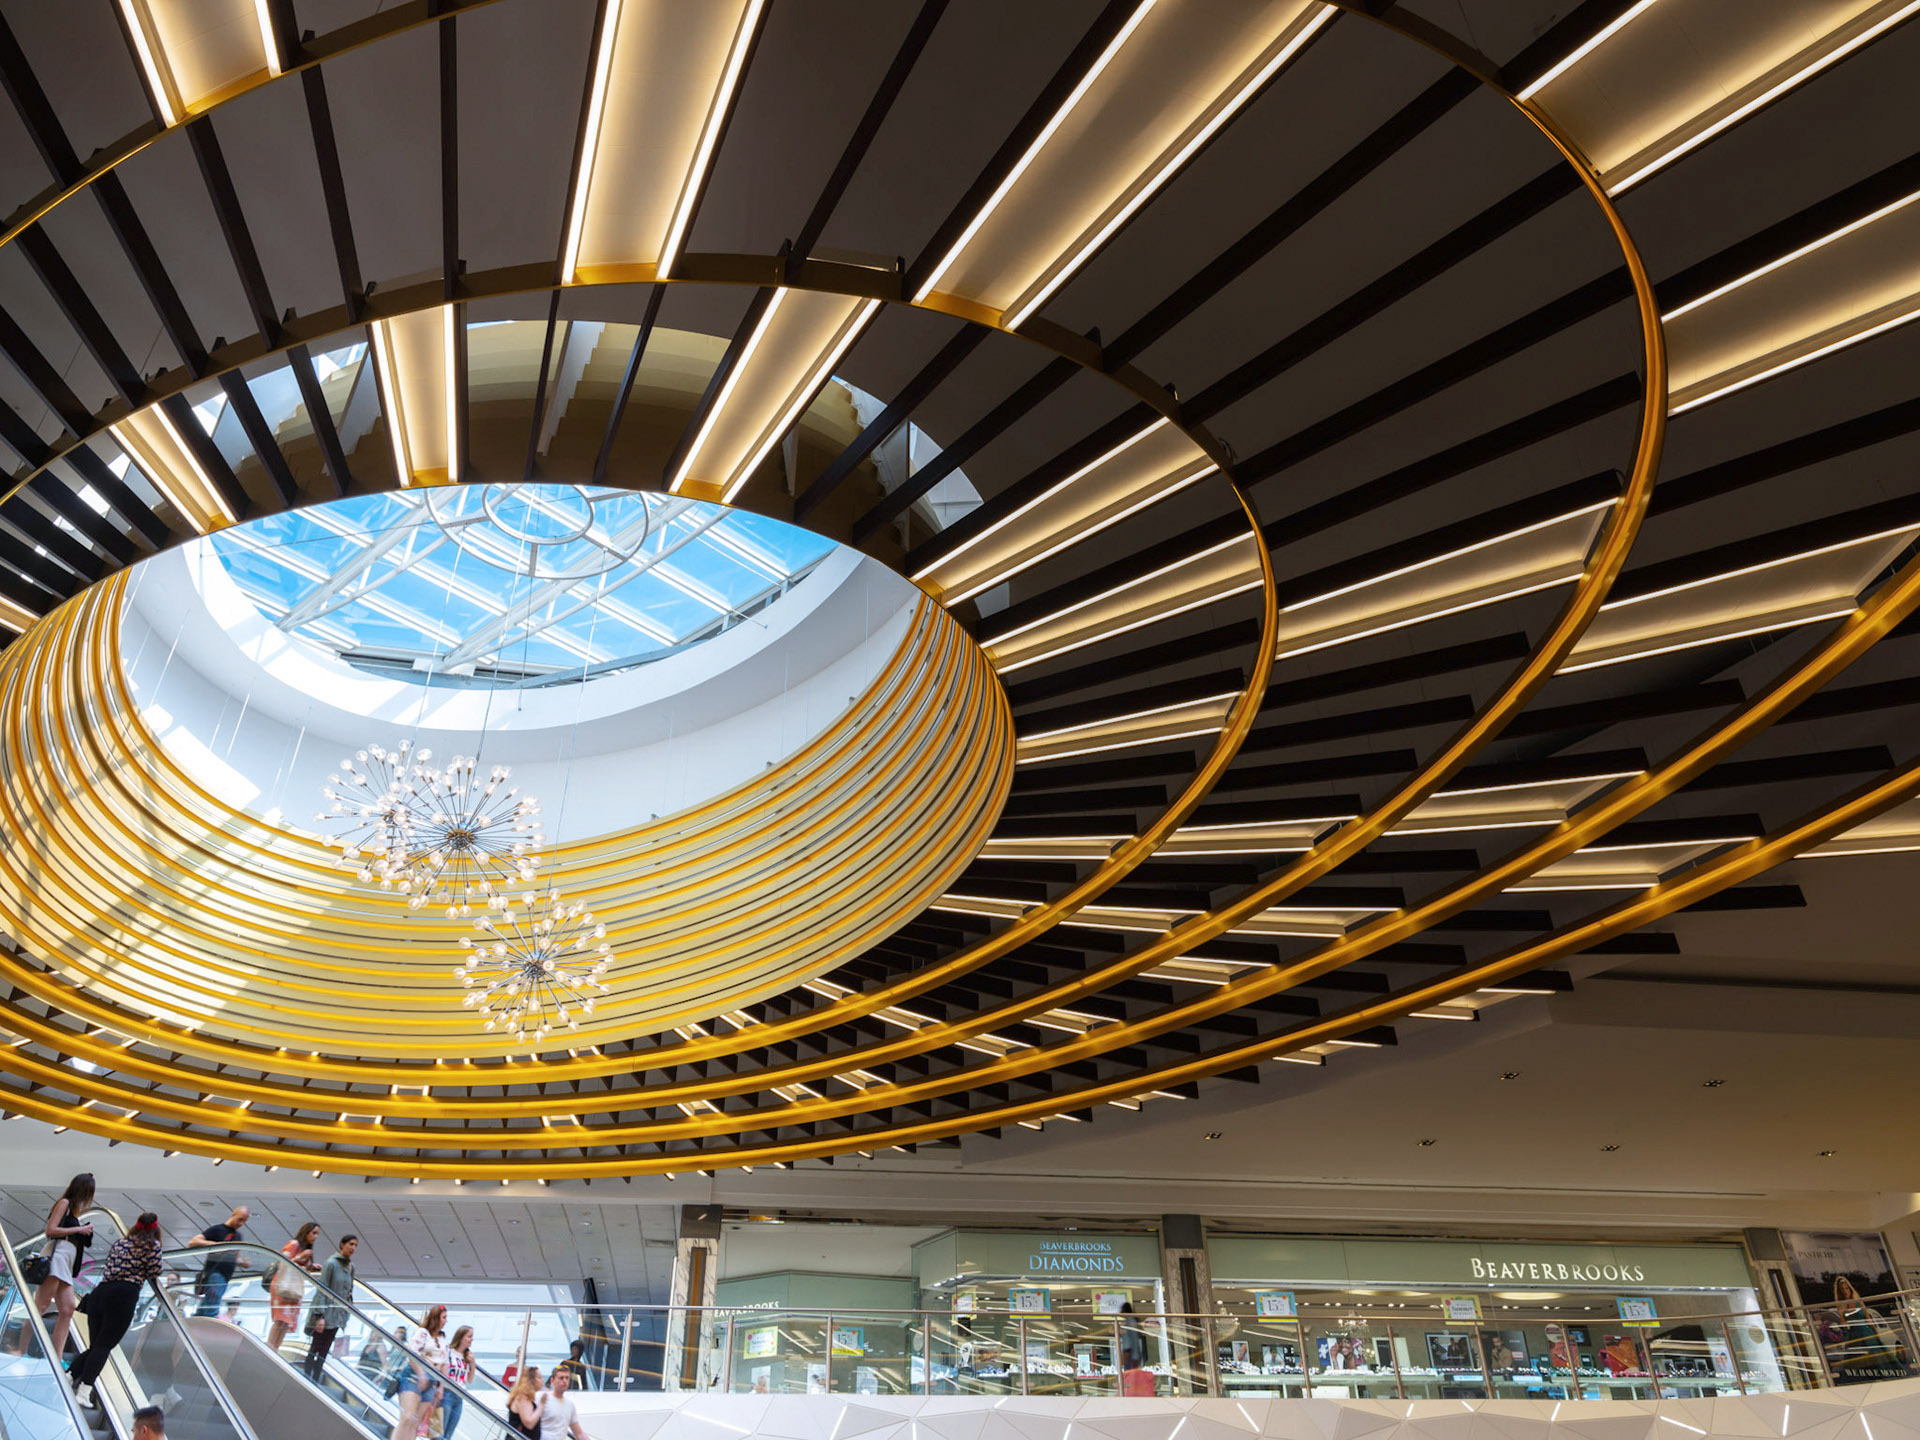 Architectural Photography Exchange Court in Manchester Arndale New Roof. Circular with gold and blue sky